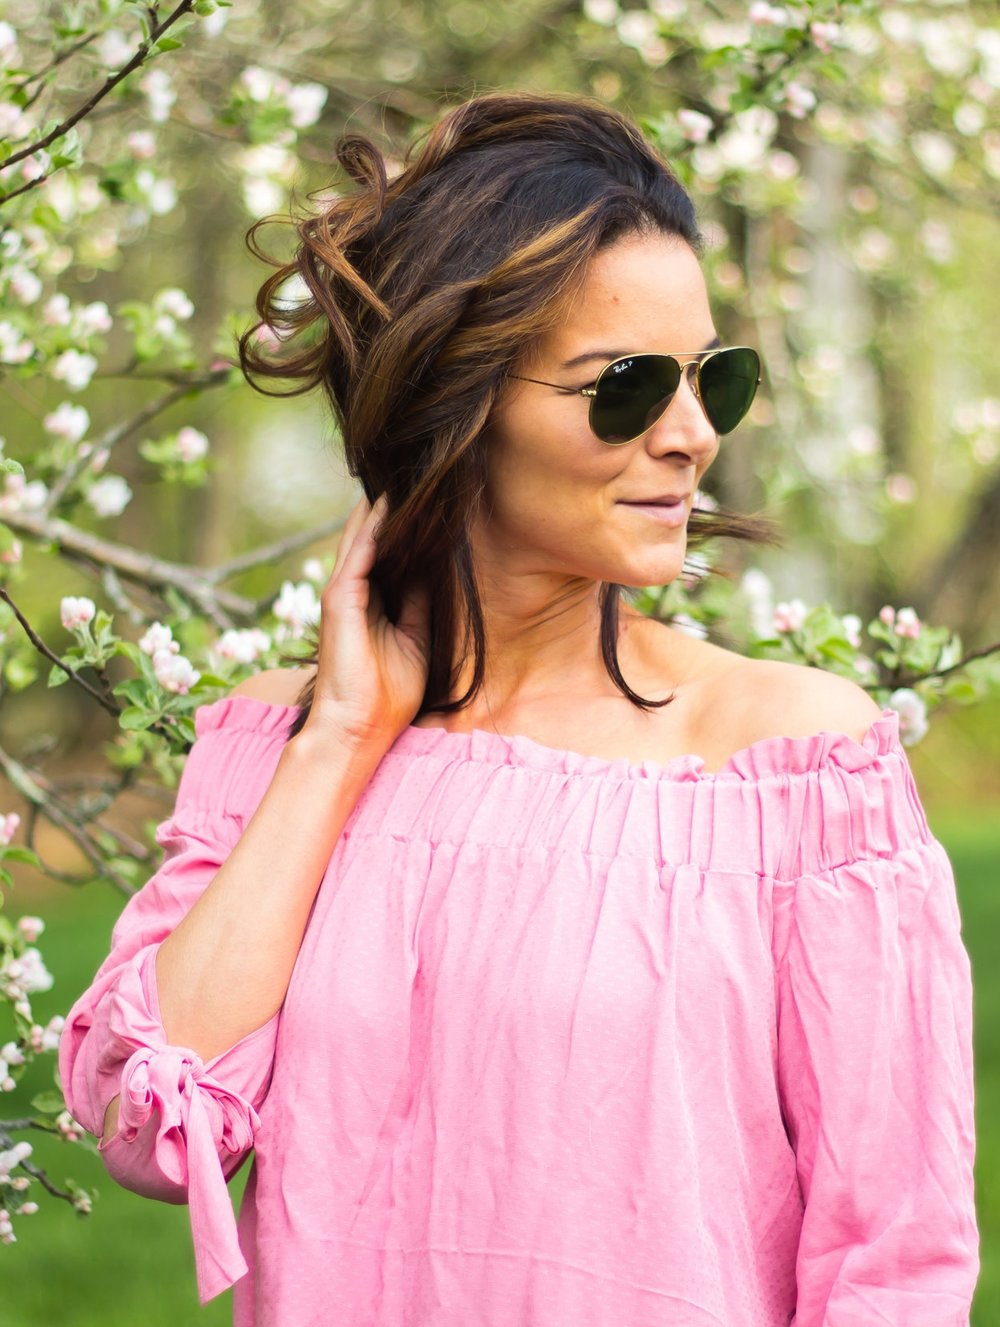 Pink Off-the-Shoulder Tops – Off-The-Shoulder Outfits – Fashion for Women – Date Night Tops – Summer Tops – Pink Tops –  heartandseam.com  #heartandseam